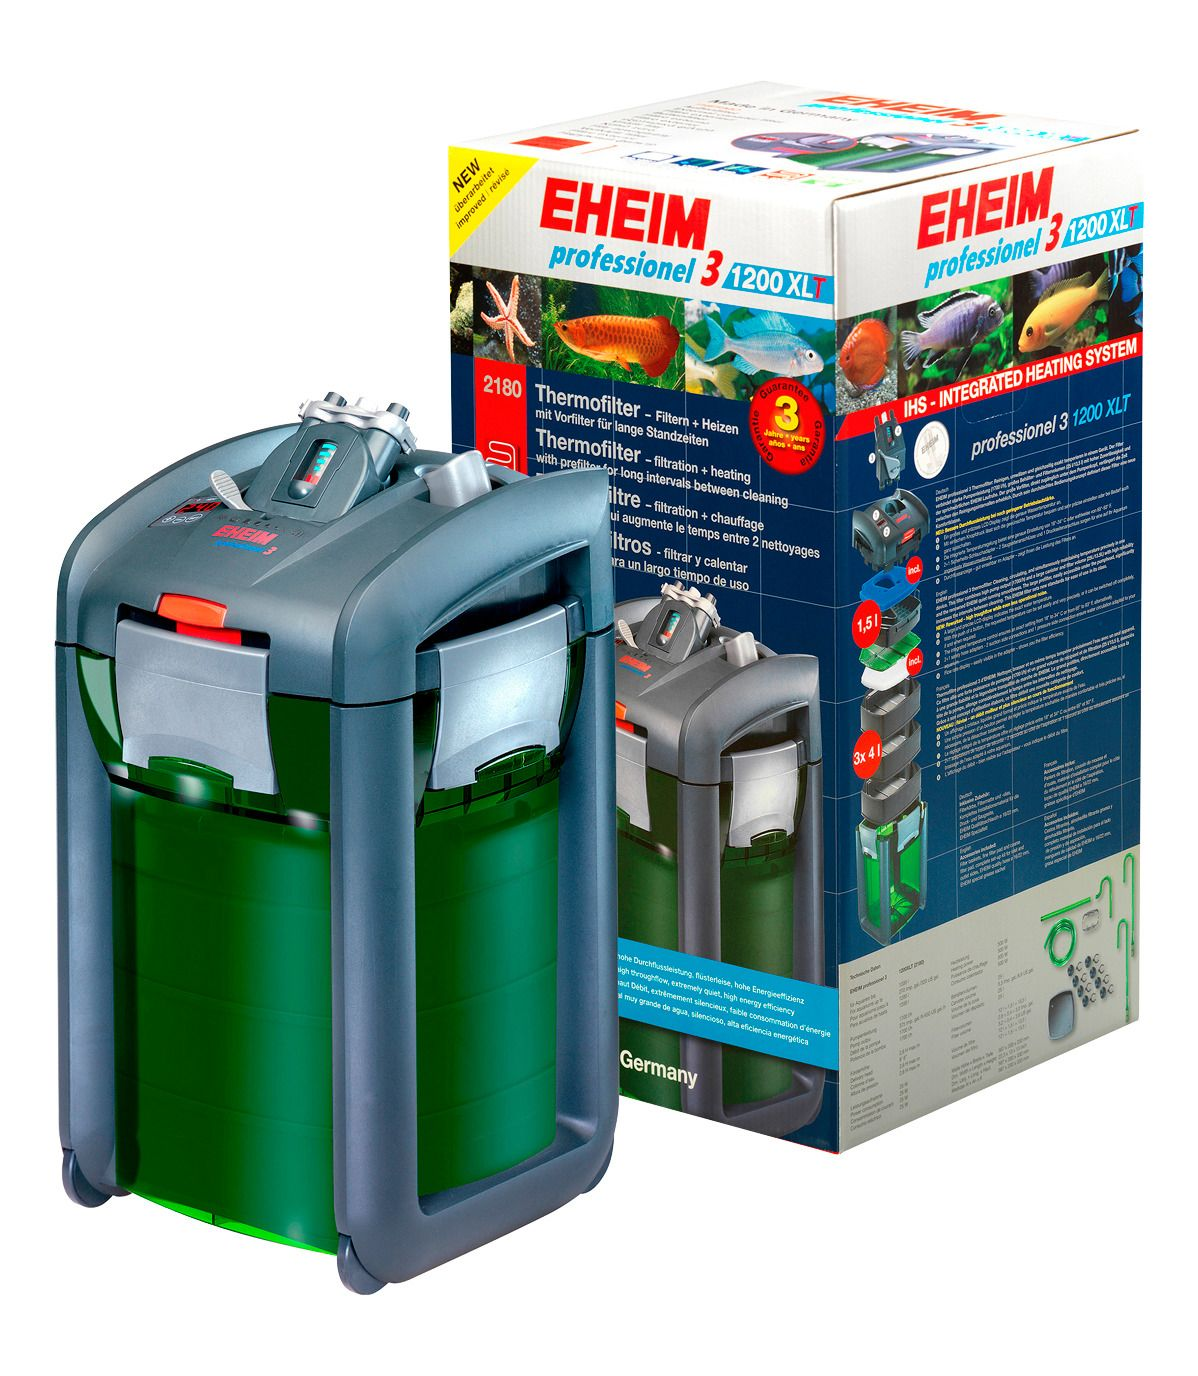 EHEIM Aquarienfilter » Thermofilter Professionel 3 1200XLT««